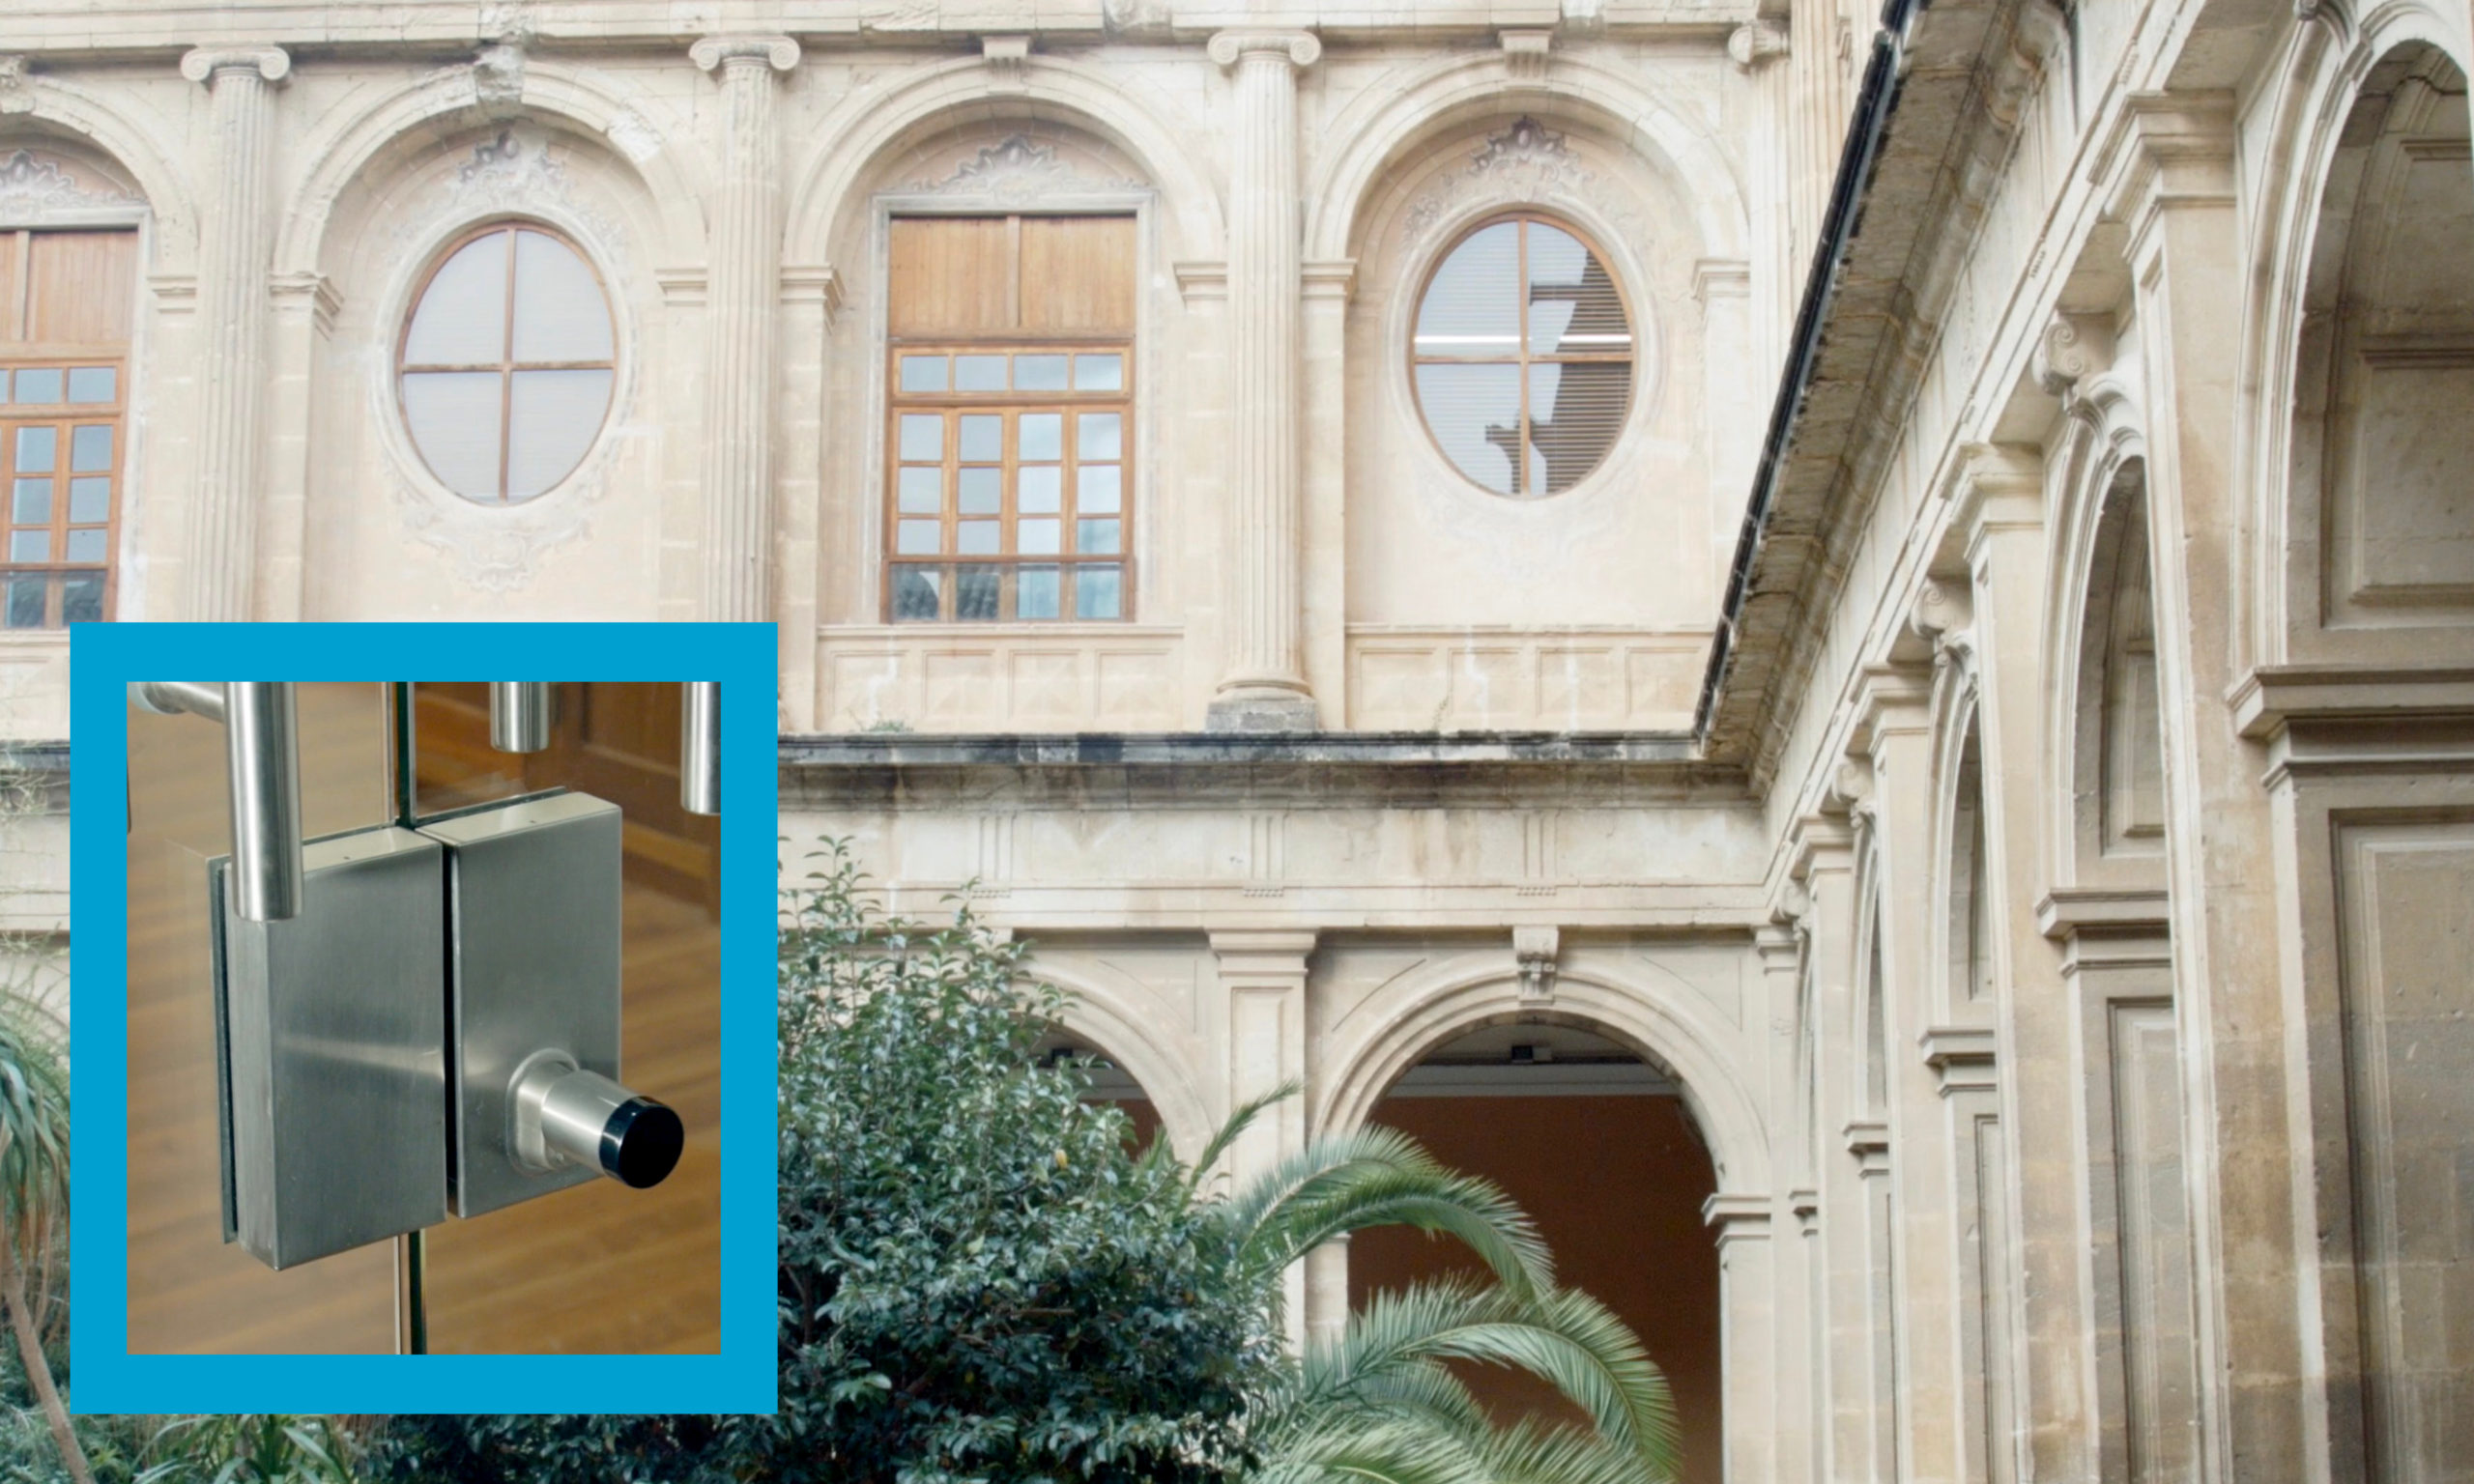 Old buildings are now easy to equip with the latest access control technologies